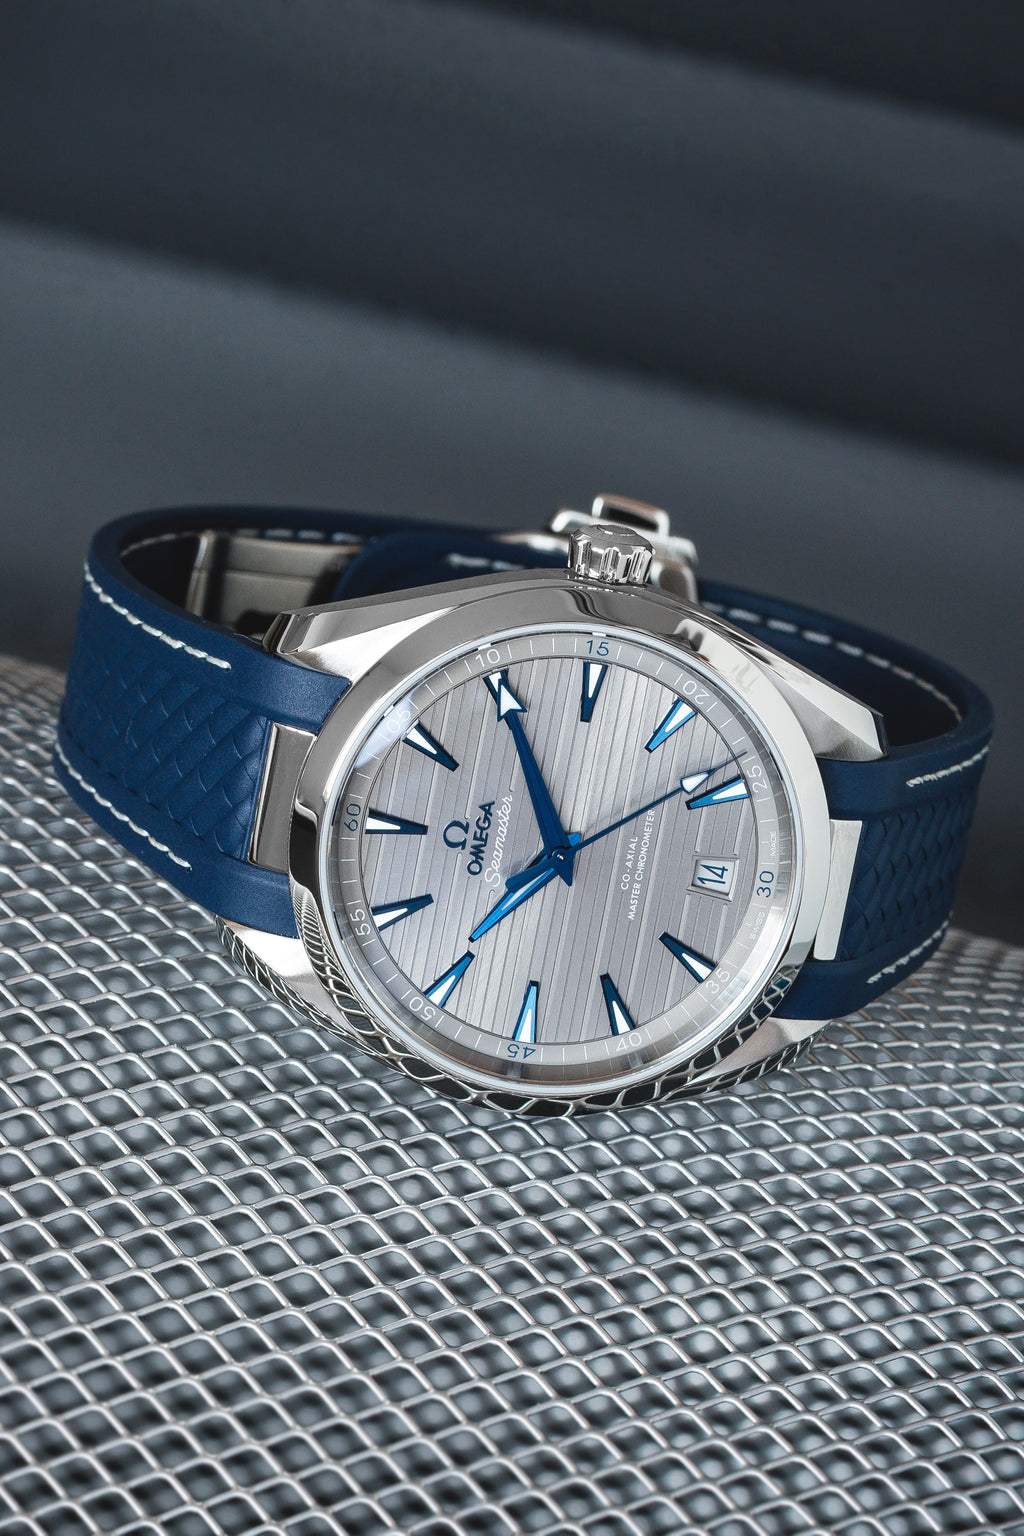 OMEGA Seamaster Aqua Terra 220.12.41.21.06.001 150M Co-Axial Master Chronometer 41mm – Grey Dial/Rubber Strap